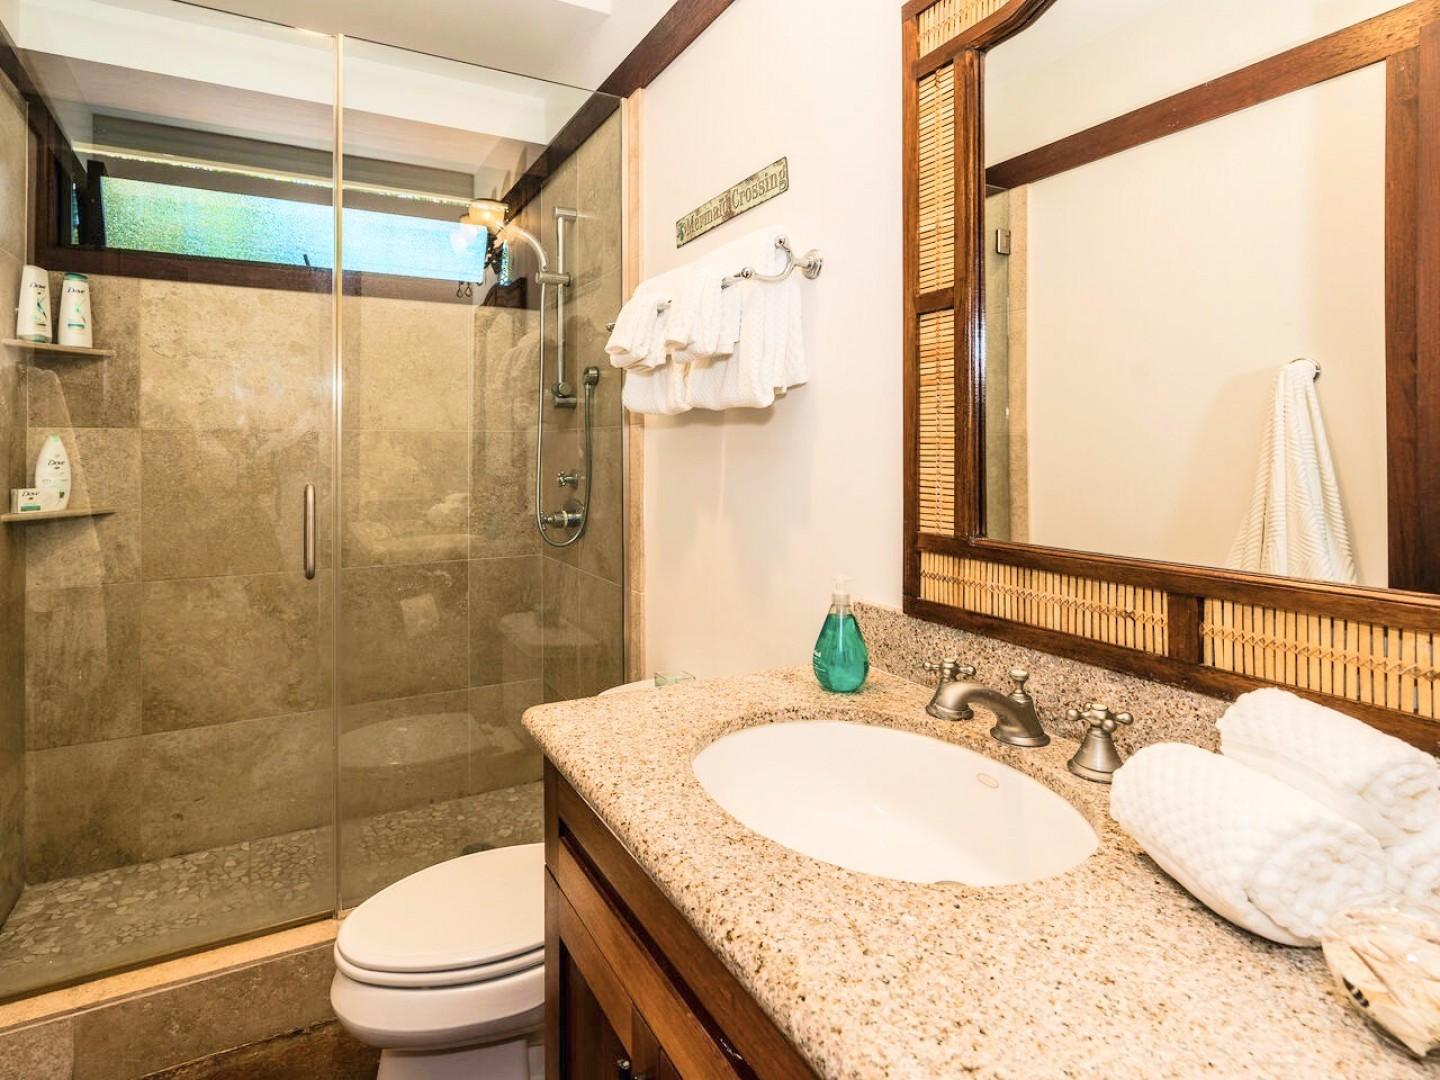 18 - Shared Guest Bathroom downstairs